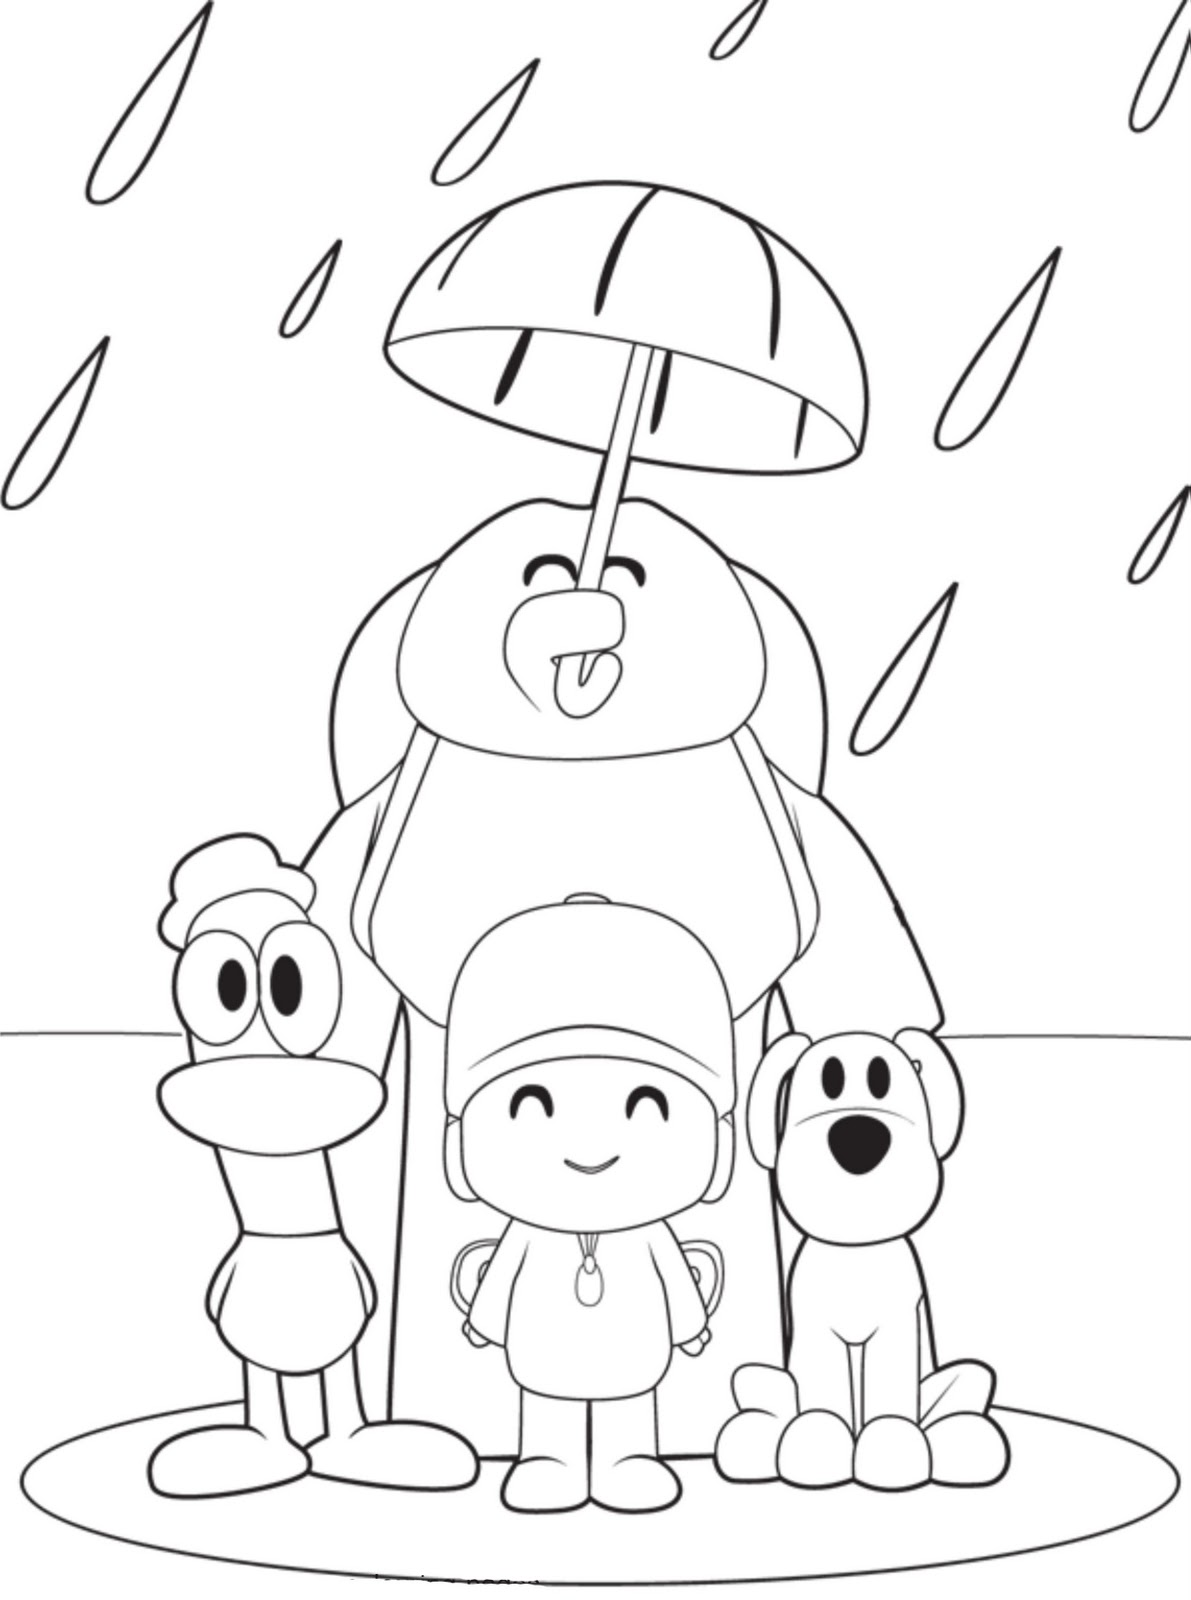 Free Printable Pocoyo Coloring Pages For Kids Coloring Page For Kid